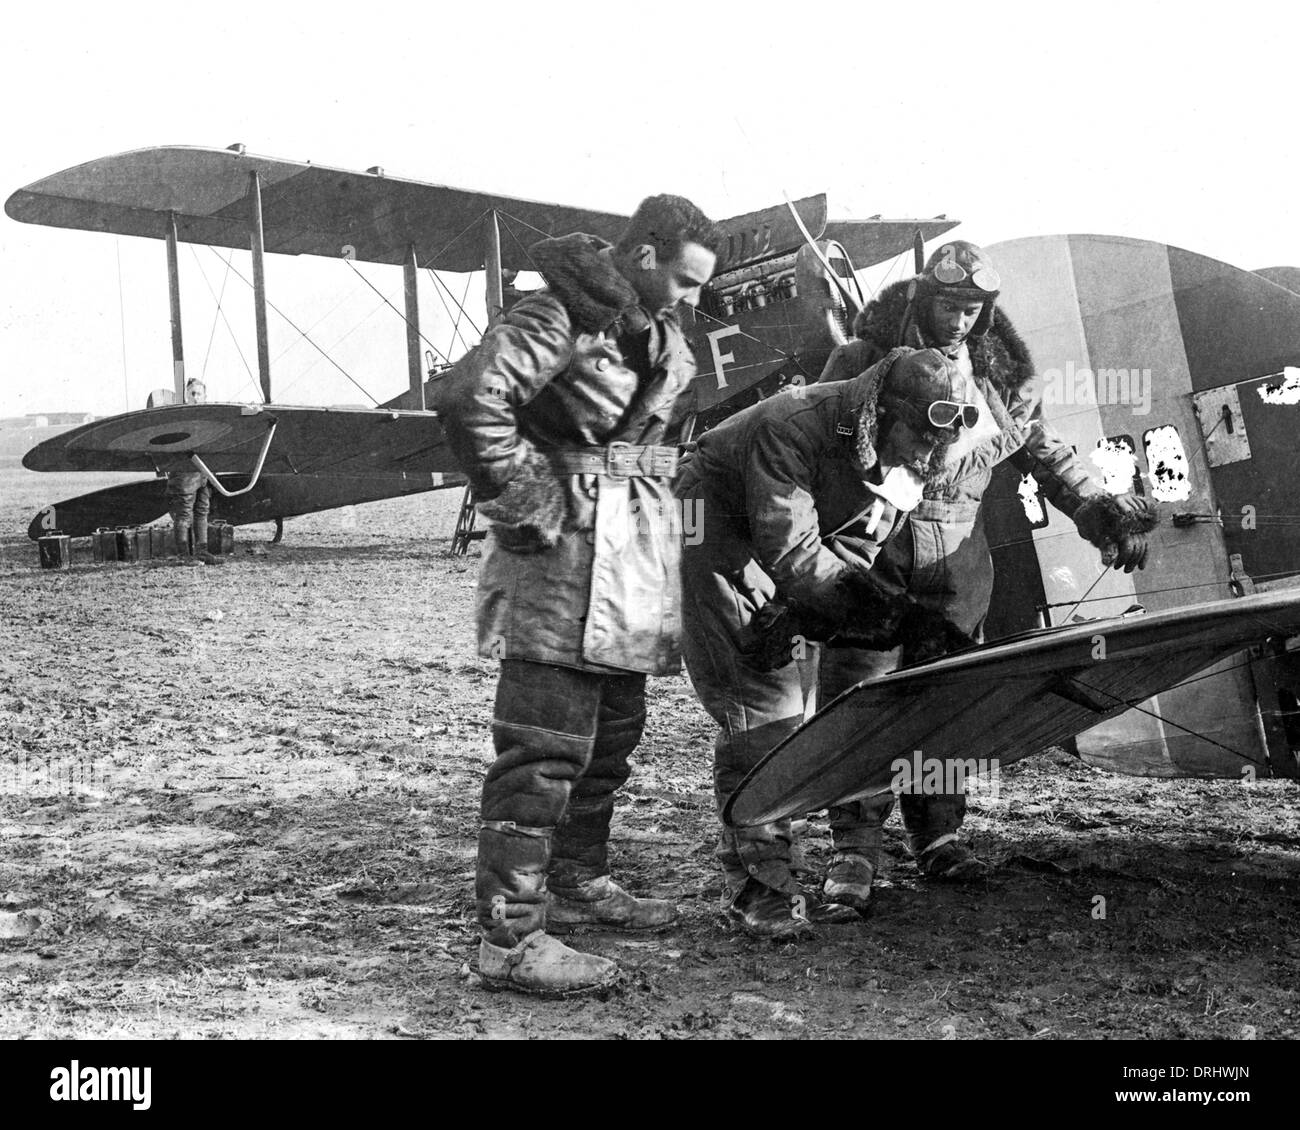 British airmen planning attack, Western Front, WW1 - Stock Image